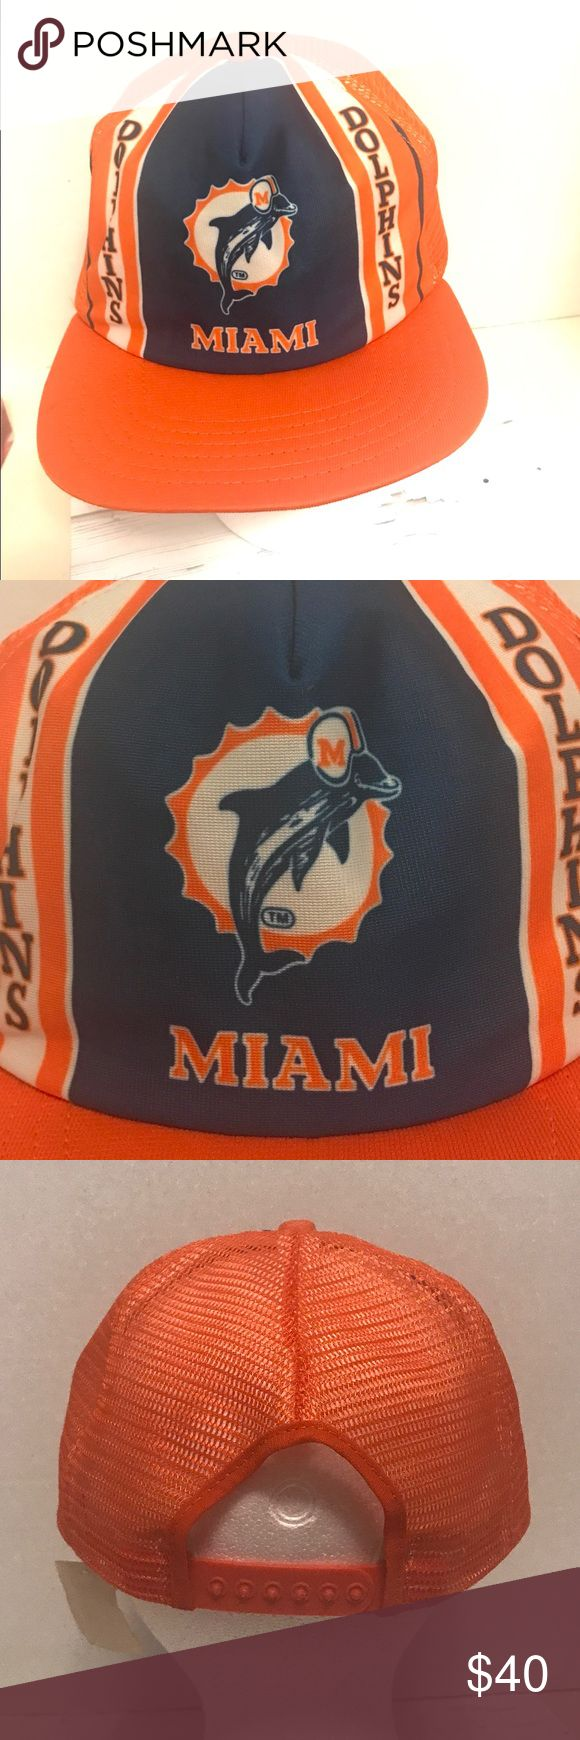 VINTAGE Miami Dolphins Mesh Trucker Hat NOS New Era Made in The USA Pro Design Official NFL Merchandise Please See All Photos New Era Accessories Hats